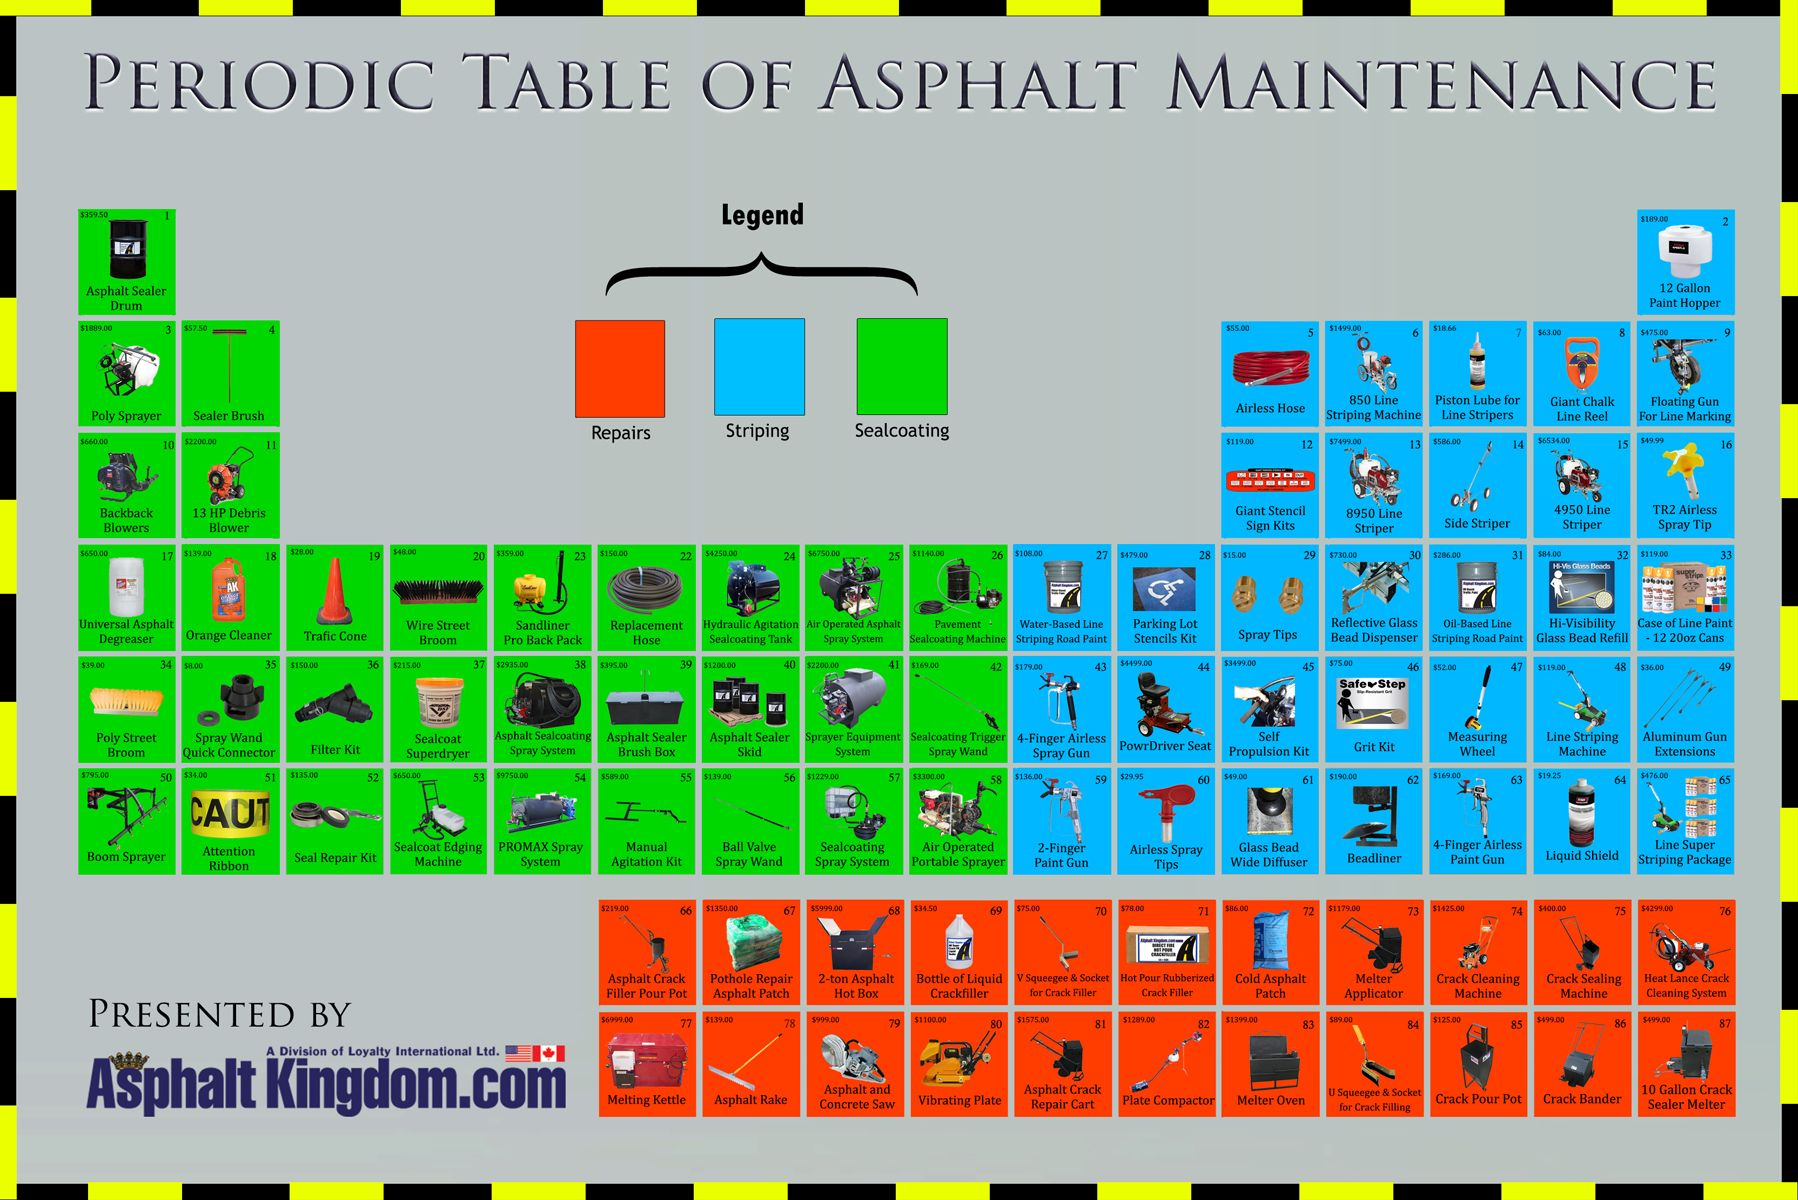 the periodic table of asphalt maintenance